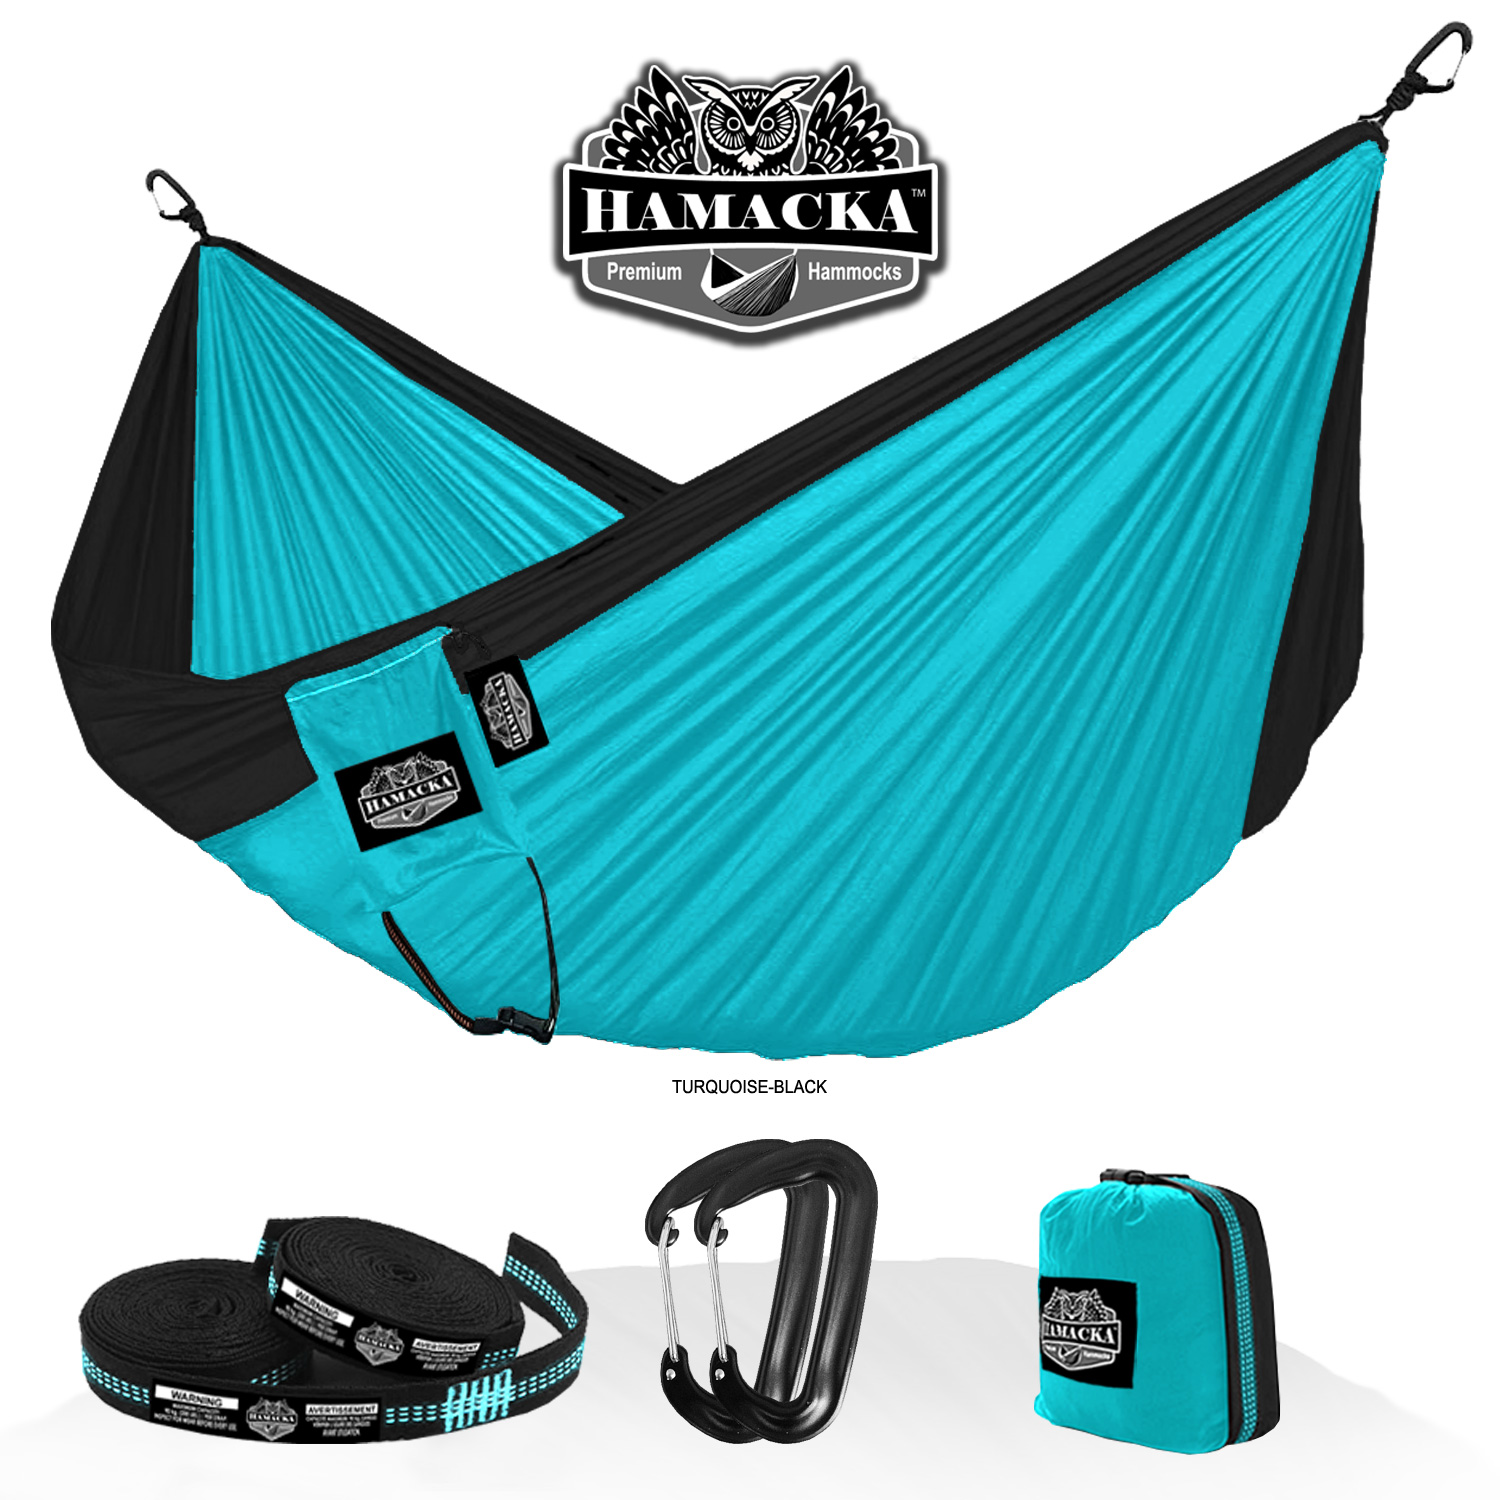 TRAVEL HAMMOCK SET (TURQUOISE)